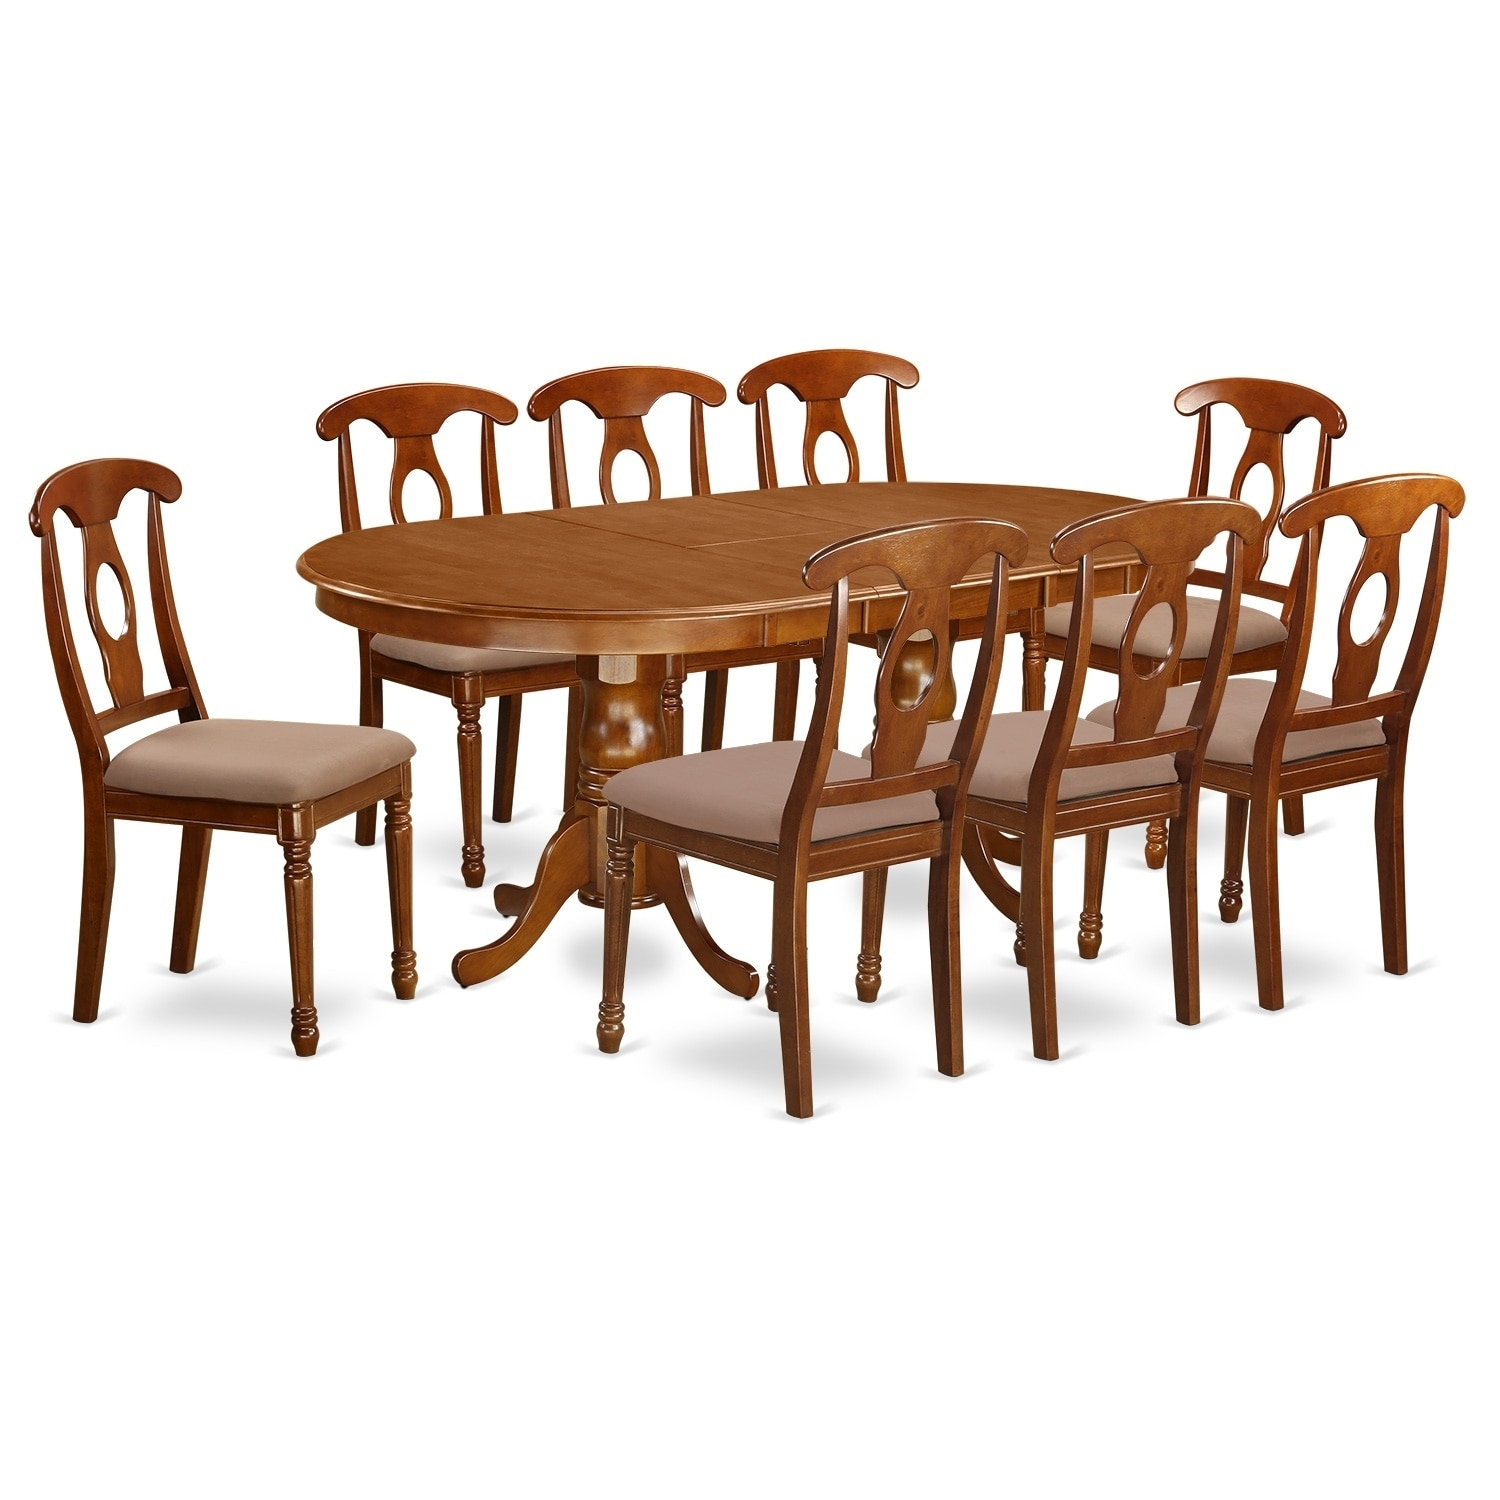 PLNA9-SBR 9 Pc formal Dining room set-Dining Table with 8 Chairs